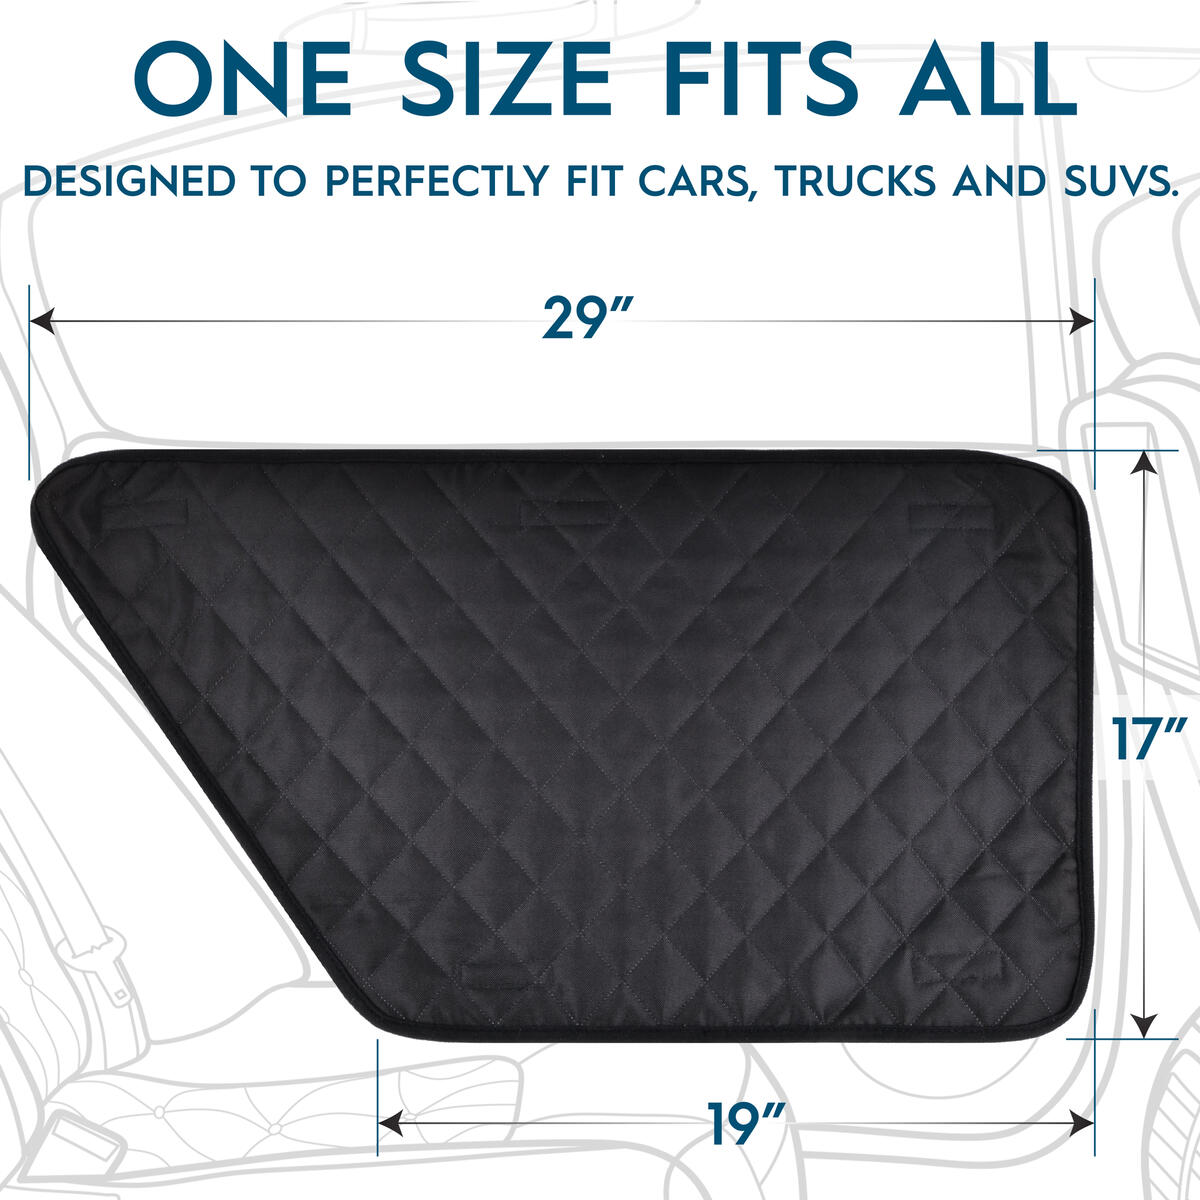 Zone Tech Car Door Pet Barrier - Black Premium Quality Heavy Duty Waterproof, Scratchproof Side Barrier Dog Pet Vehicle Interior Door Cover- Universal Size Fits Cars, Trucks & SUVs (1 Right &1 Left)